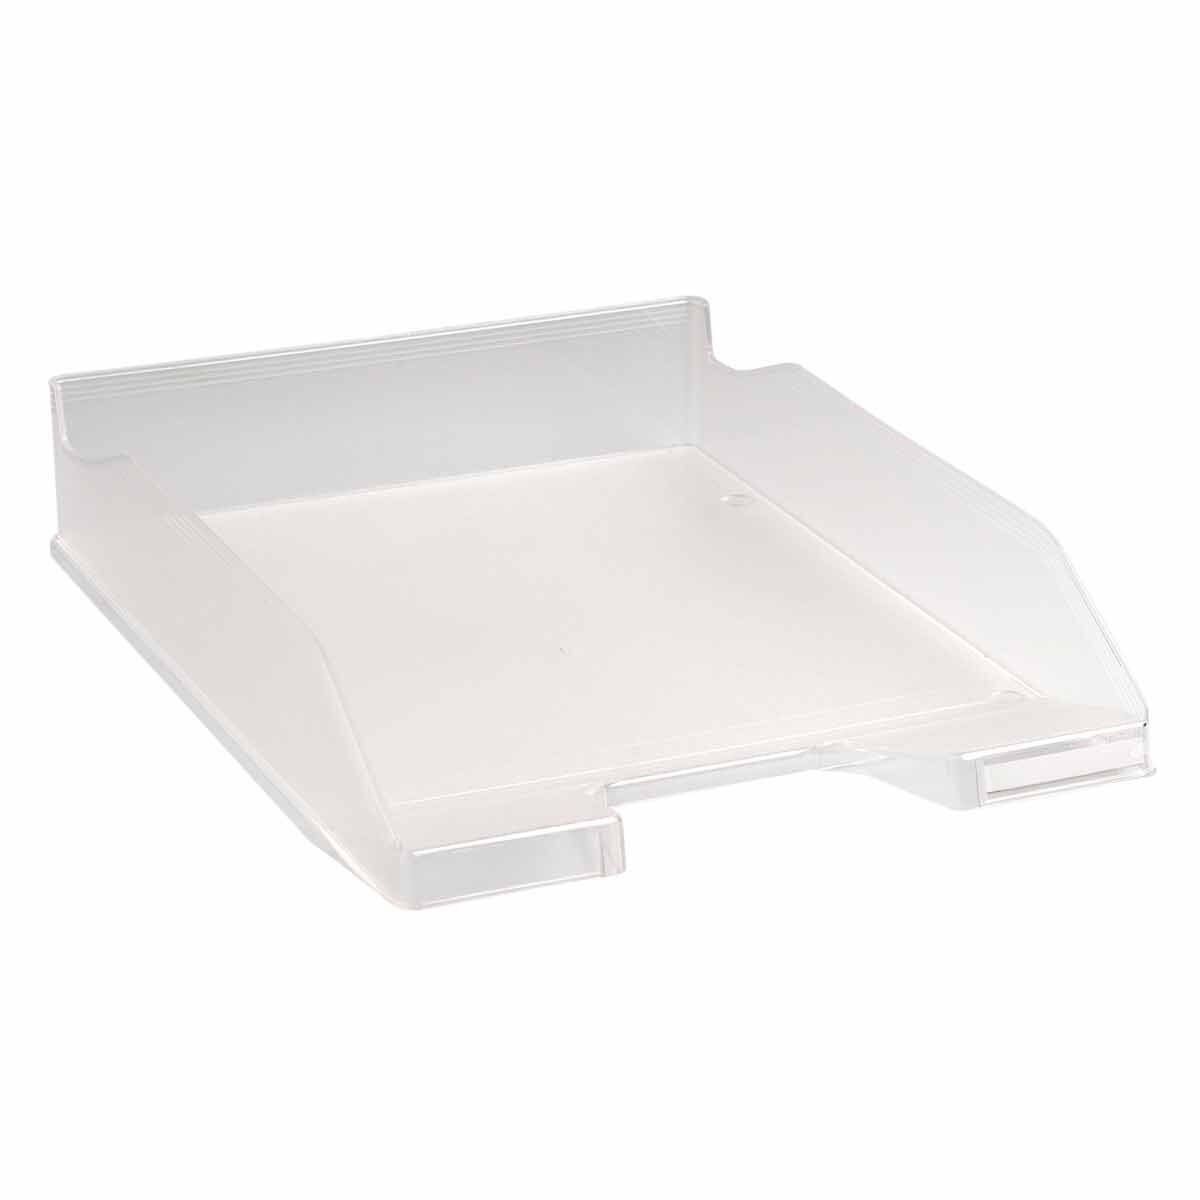 Exacompta Office Letter Tray Midi Combo Pack of 6 Translucent Crystal Clear